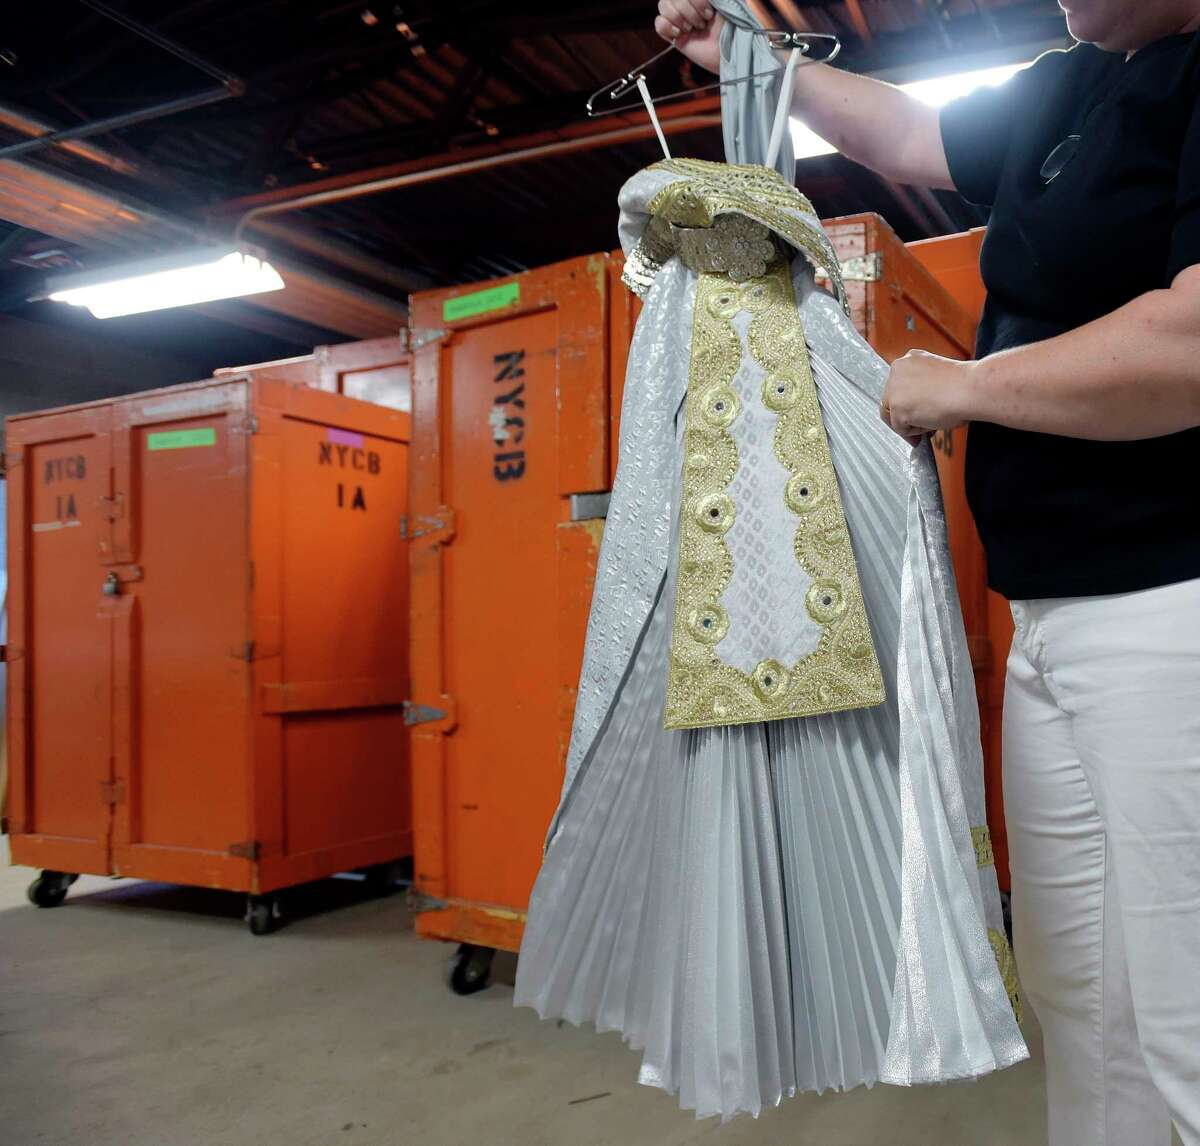 Marquerite Mehler, director of production for the New York City Ballet, shows one of the hundreds of ballet costumes that dancers will wear during the New York City Ballet Saratoga season at Saratoga Performing Arts Center on Tuesday, July 10, 2018, in Saratoga Springs, N.Y. (Paul Buckowski/Times Union)